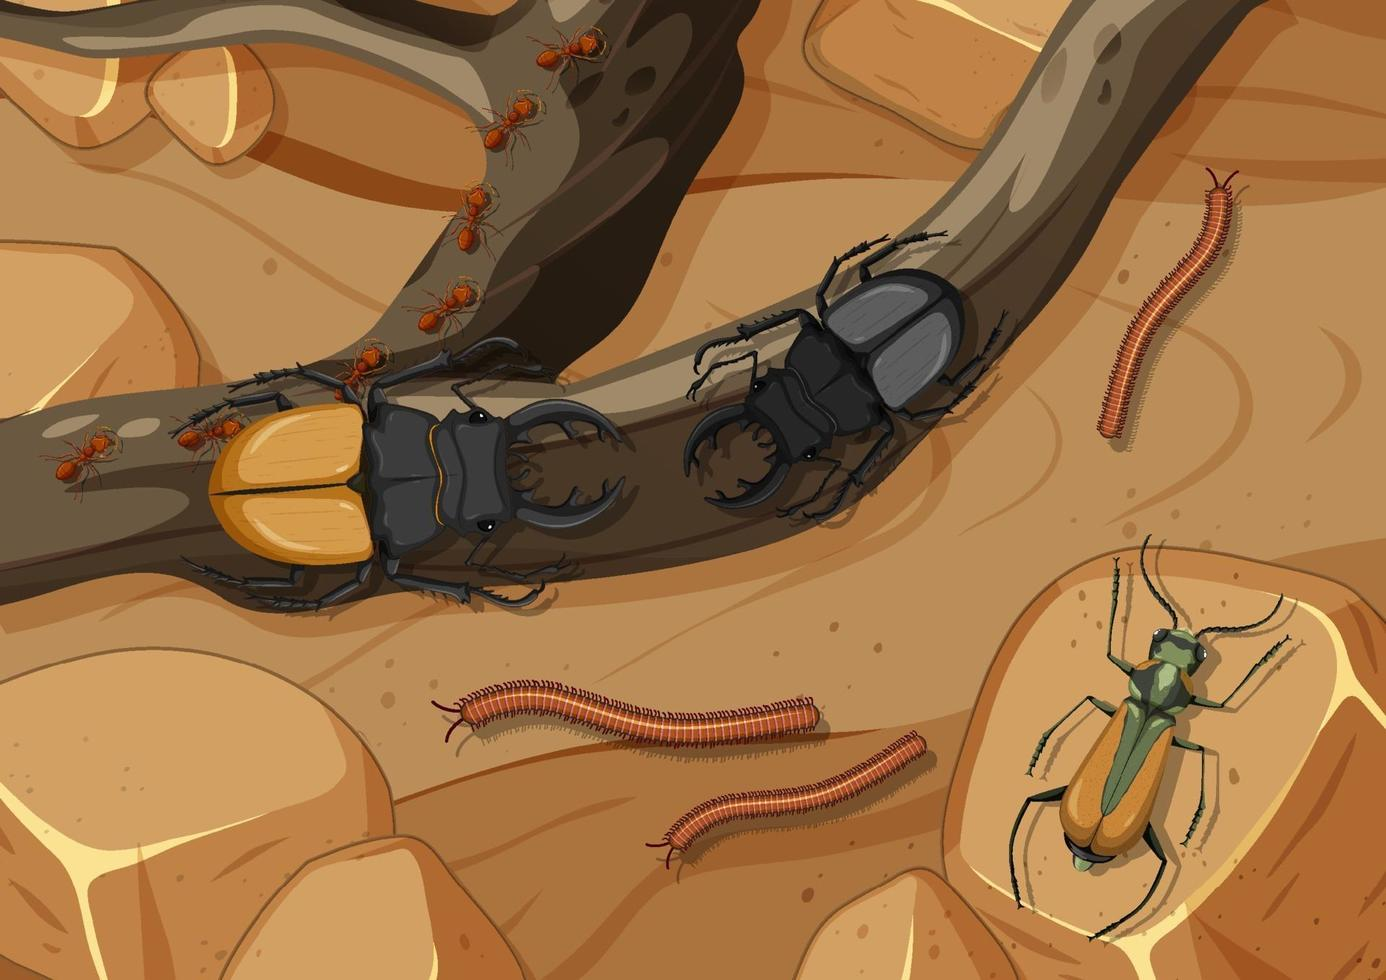 Aerial scene with stag beetles and millipede vector